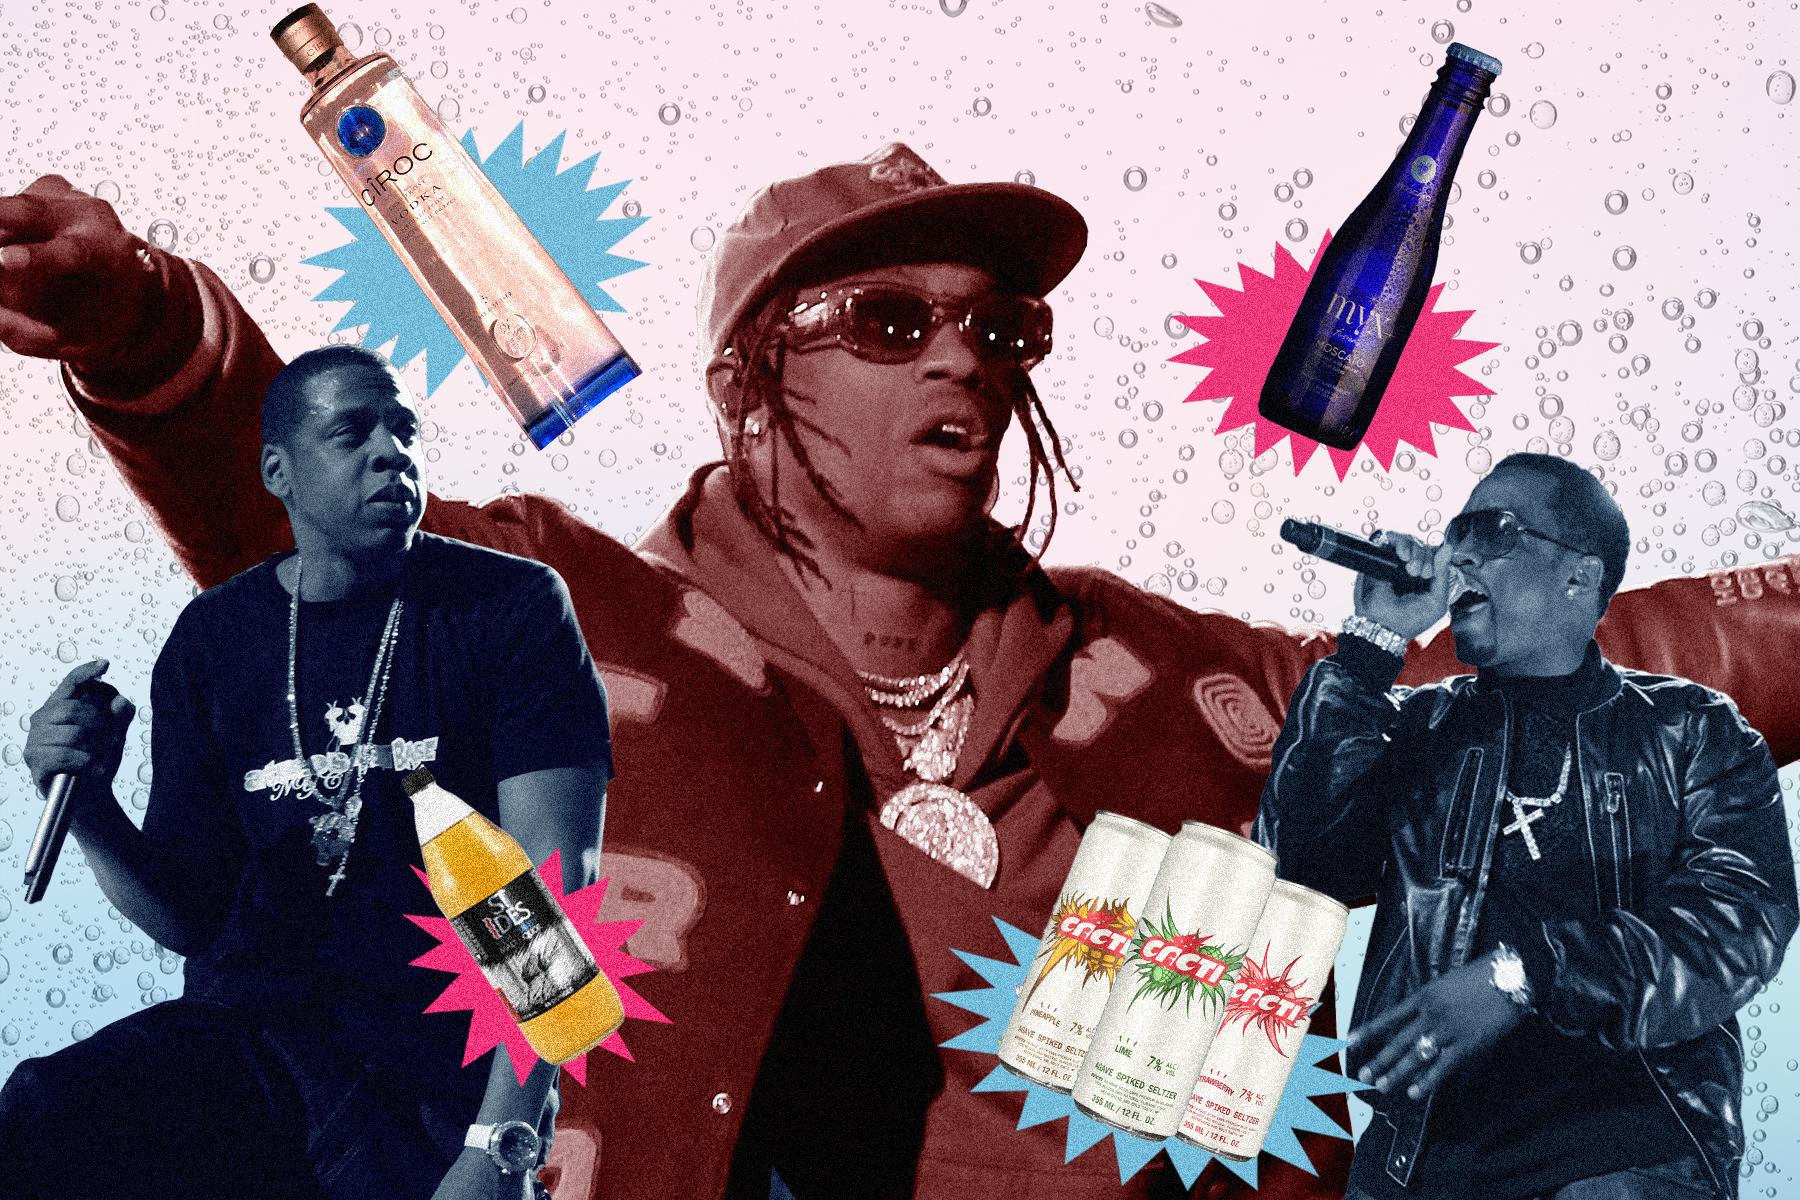 Travis Scott's Cacti Seltzer and the Long History of Hip-Hop Beverages